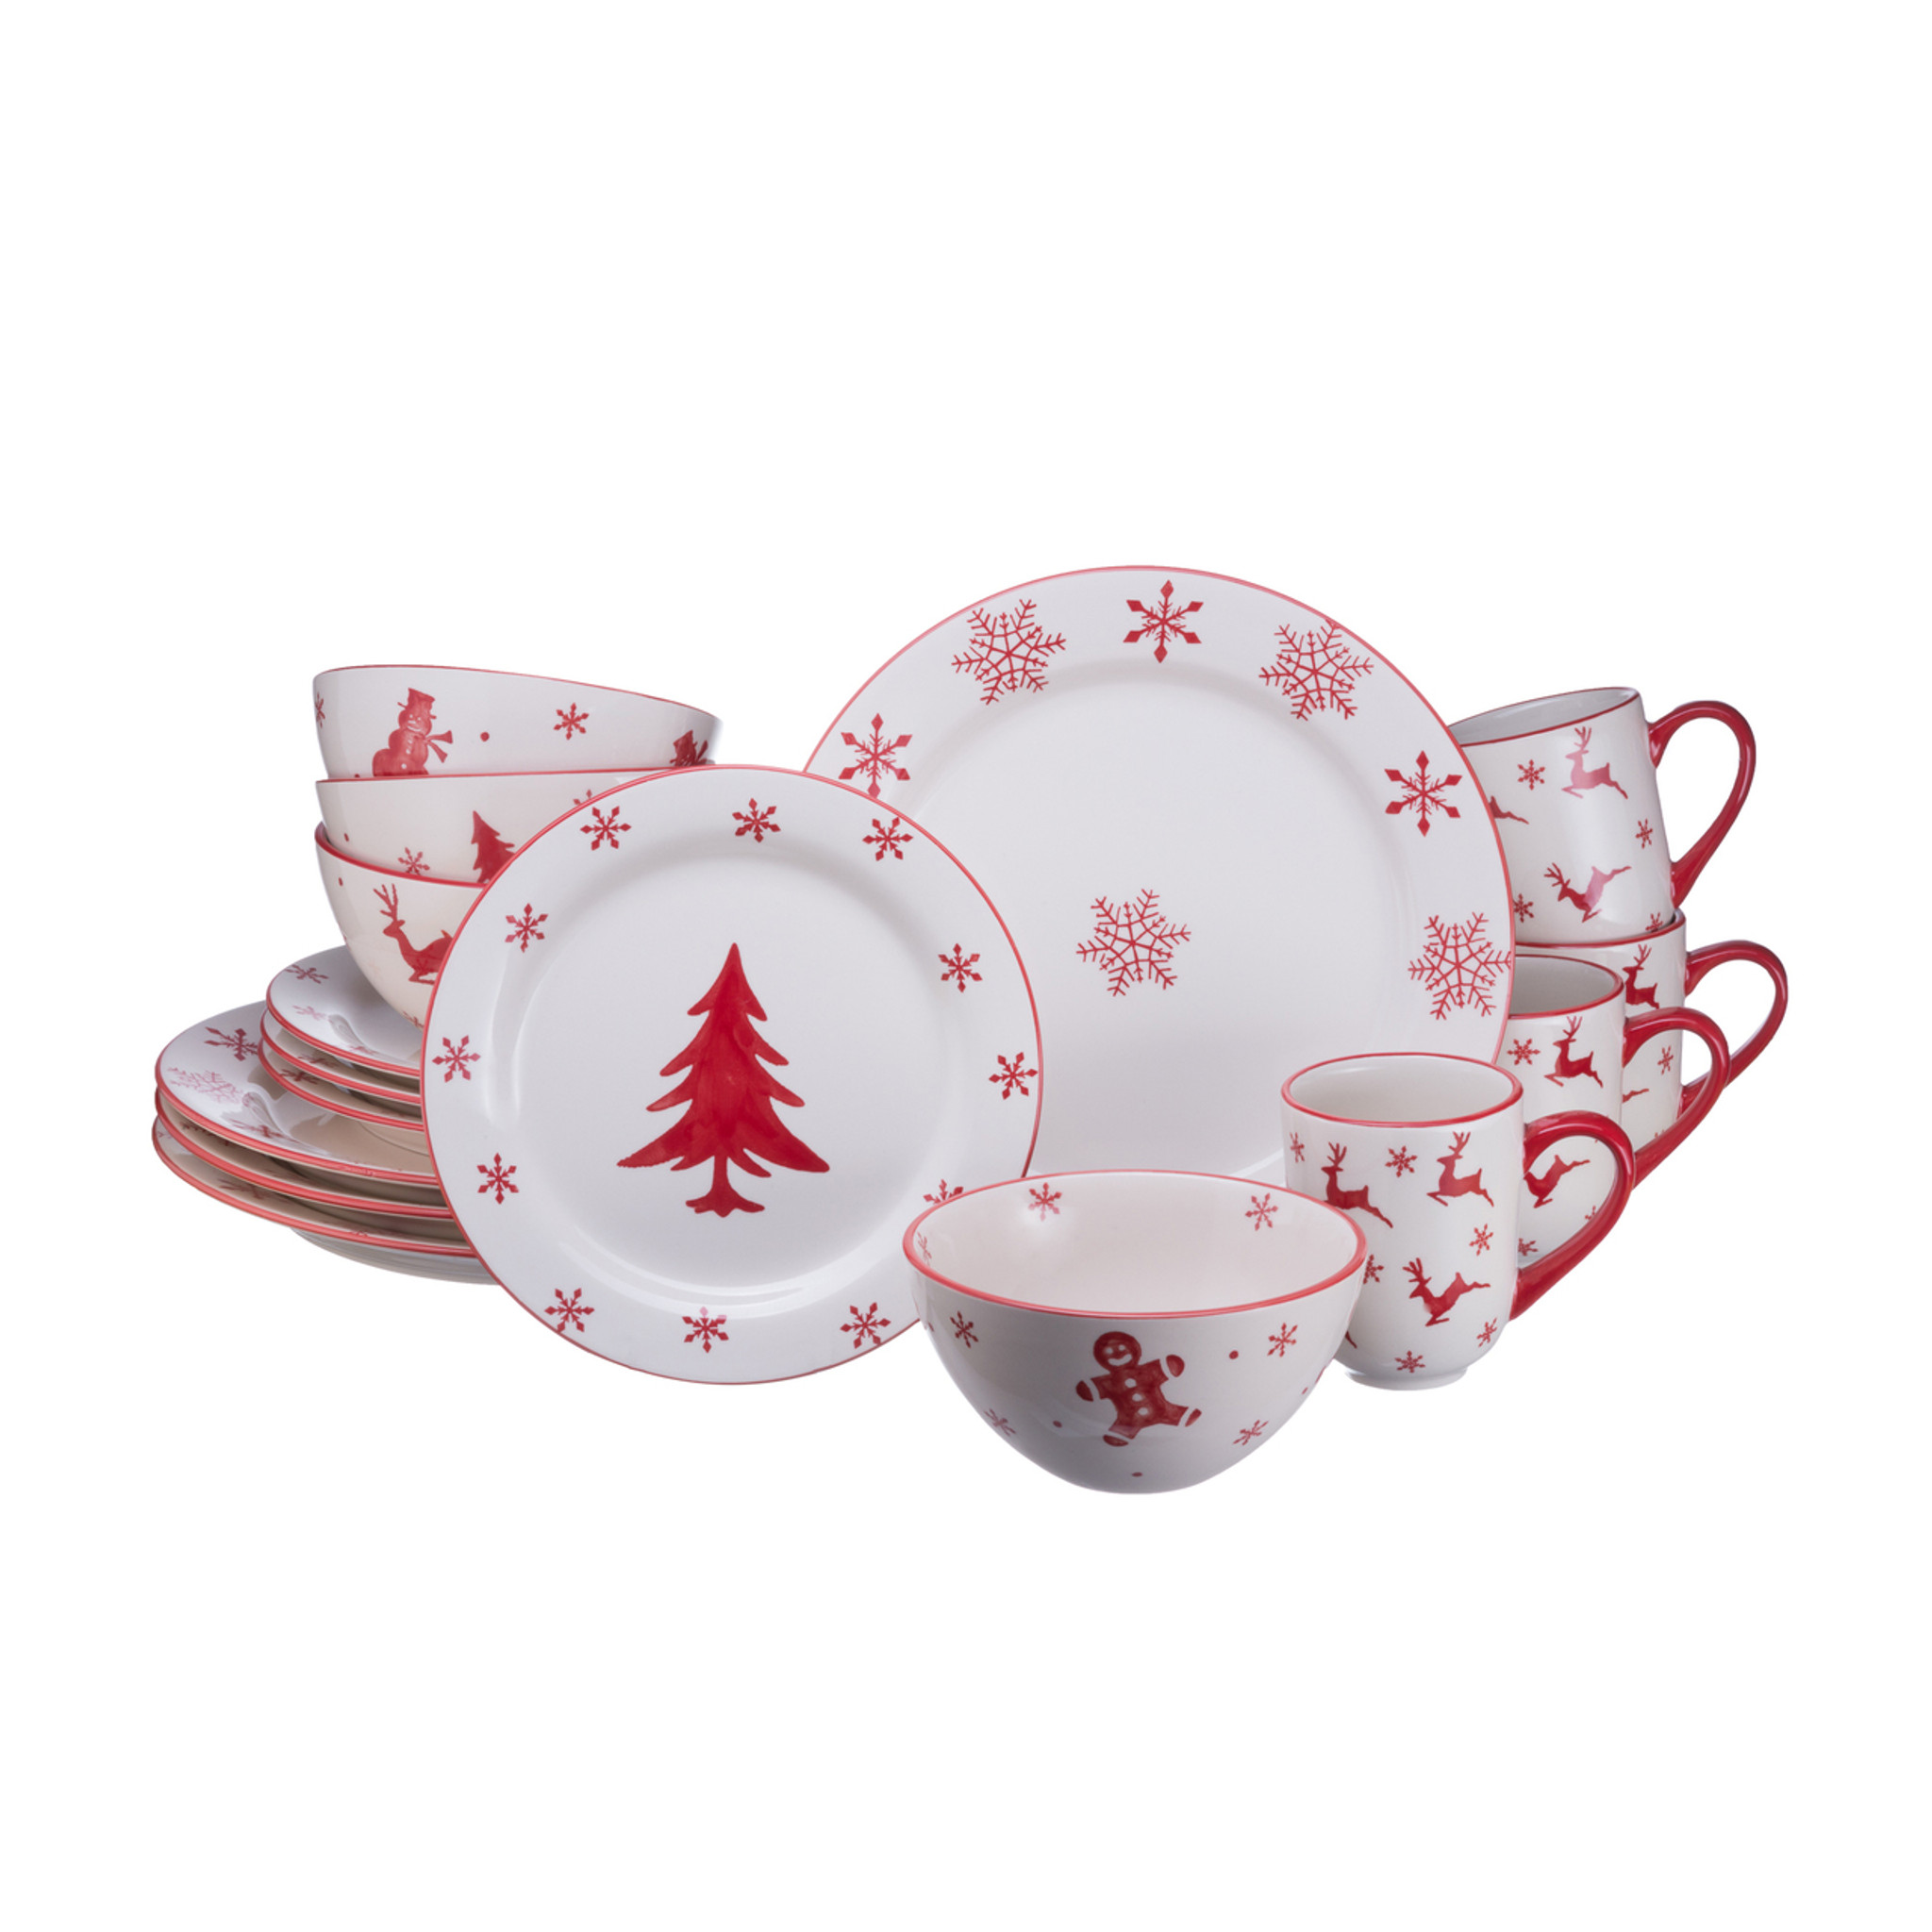 Winterfest 16 Piece Dinnerware Set Service for 4  sc 1 st  Euro Ceramica : dinnerware 16 piece - pezcame.com